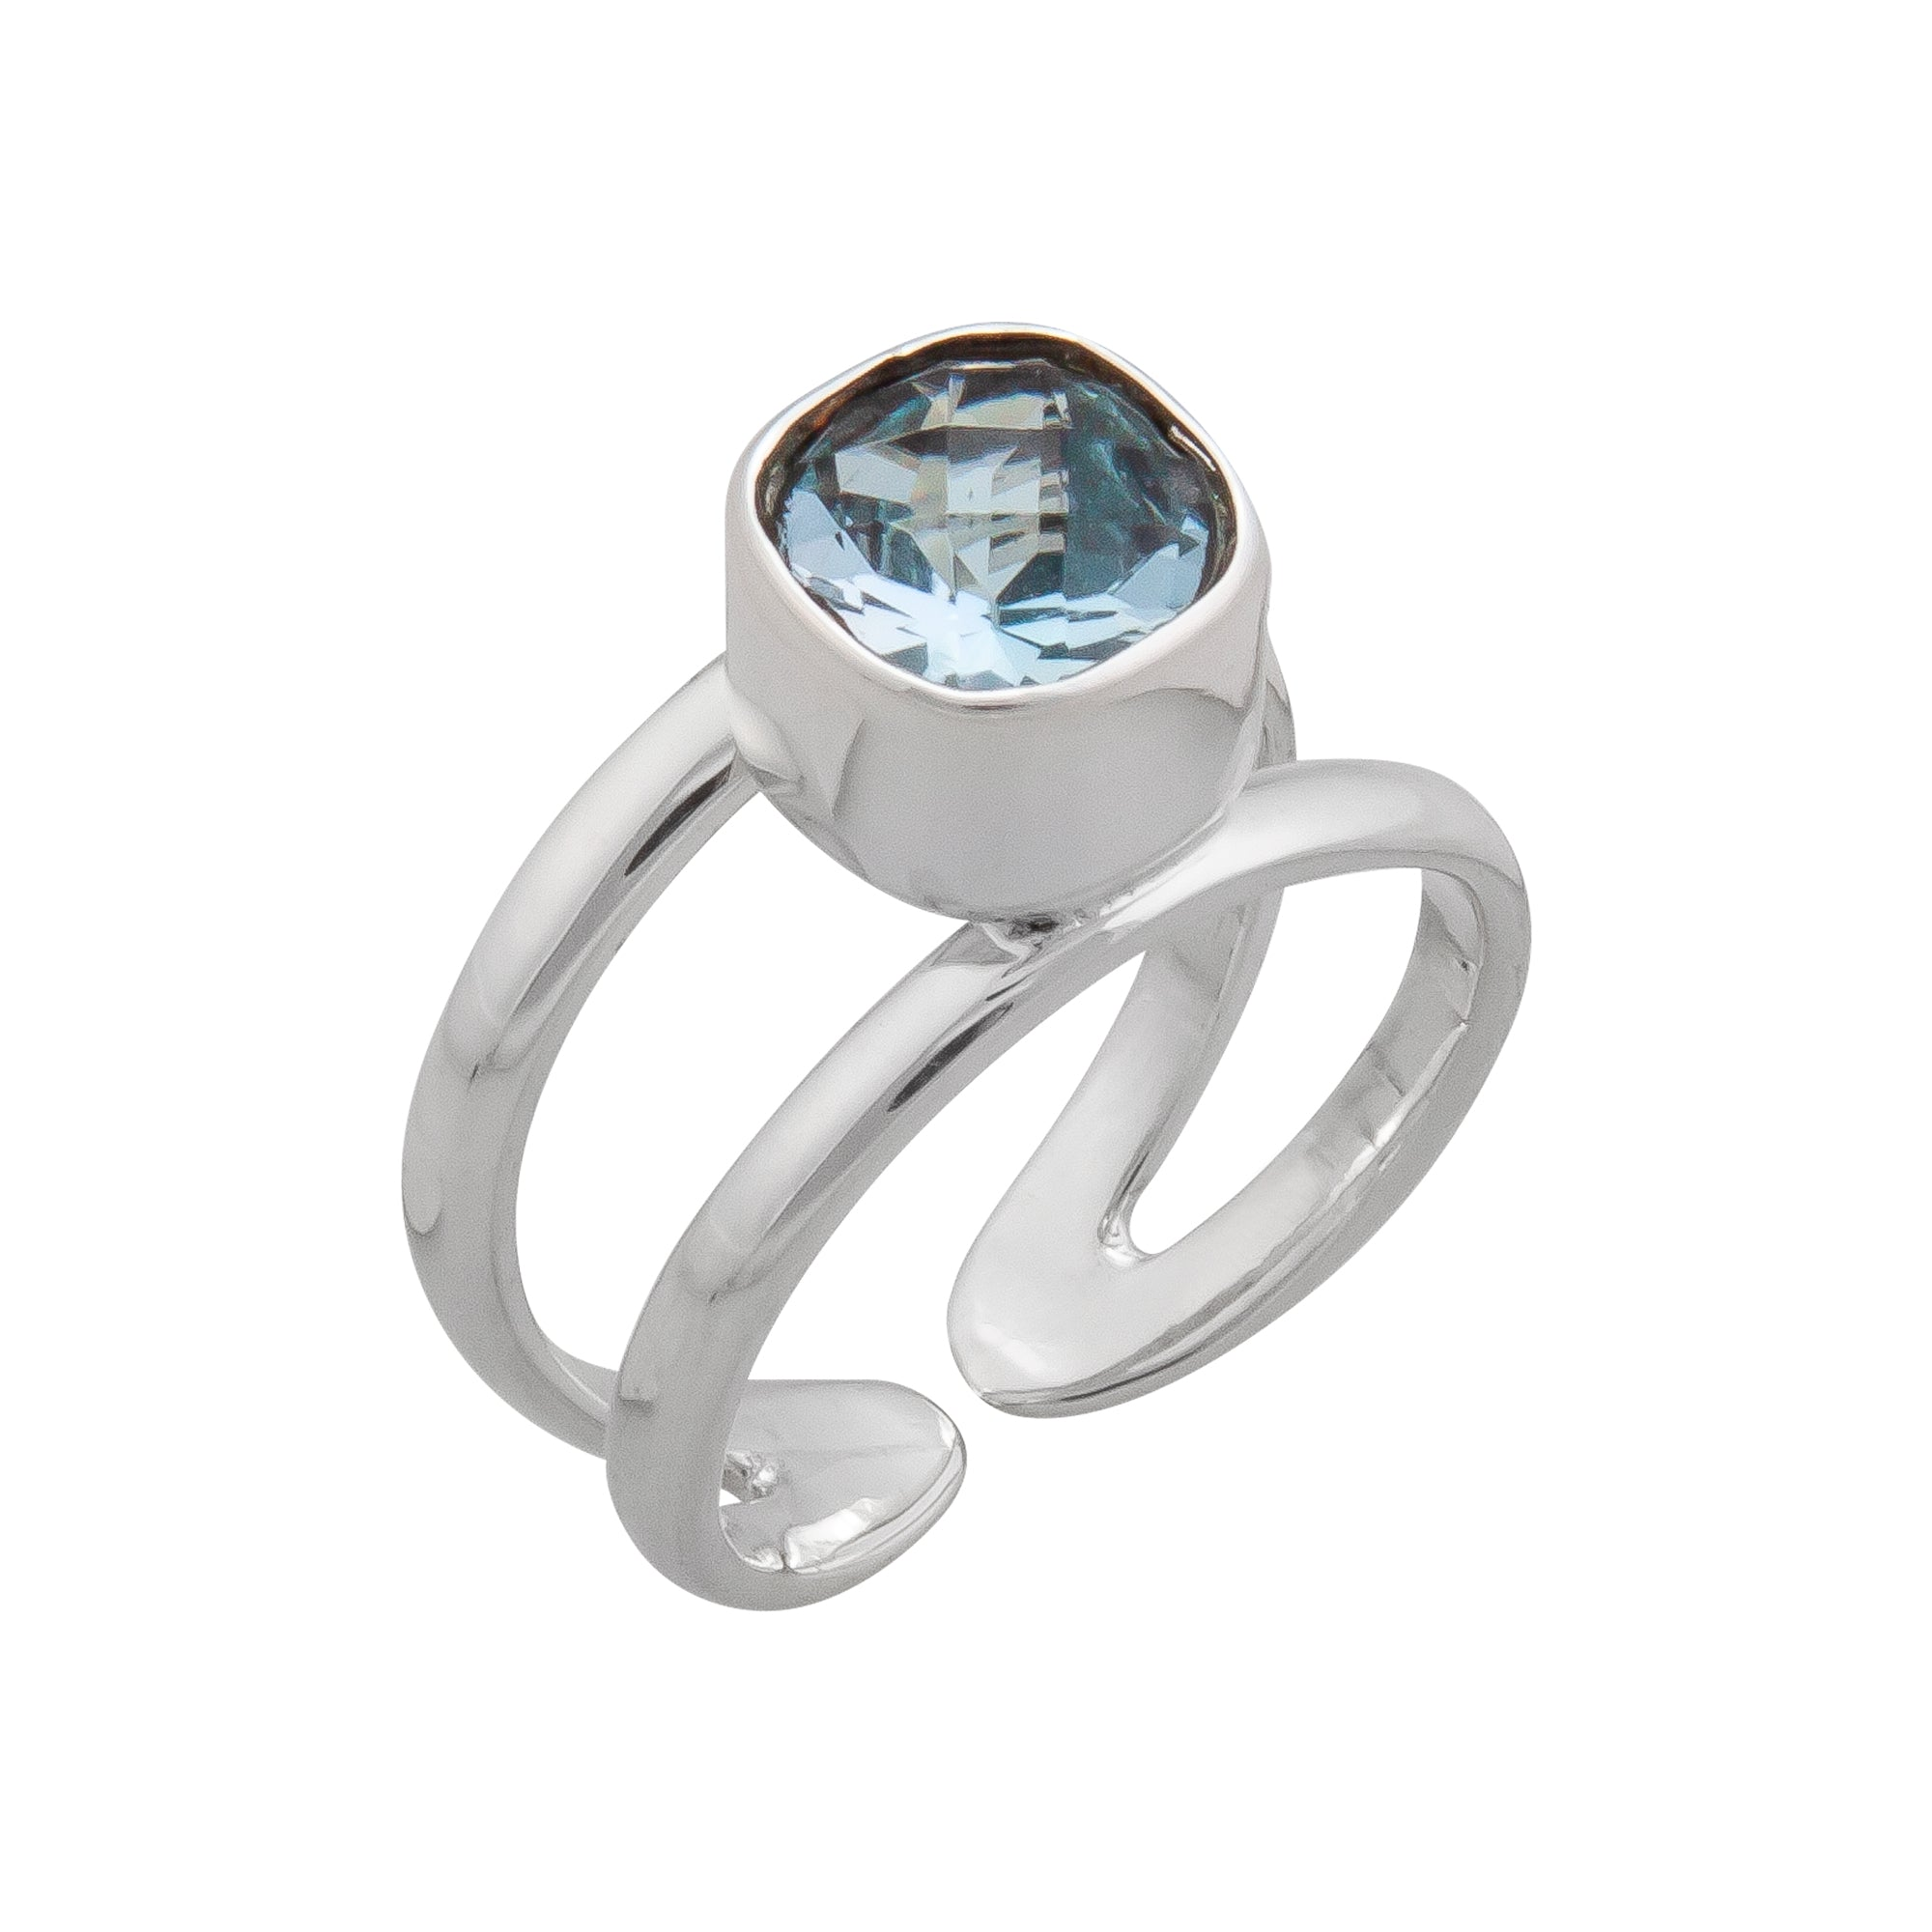 Sterling Silver Blue Topaz Cuff Ring | Charles Albert Jewelry